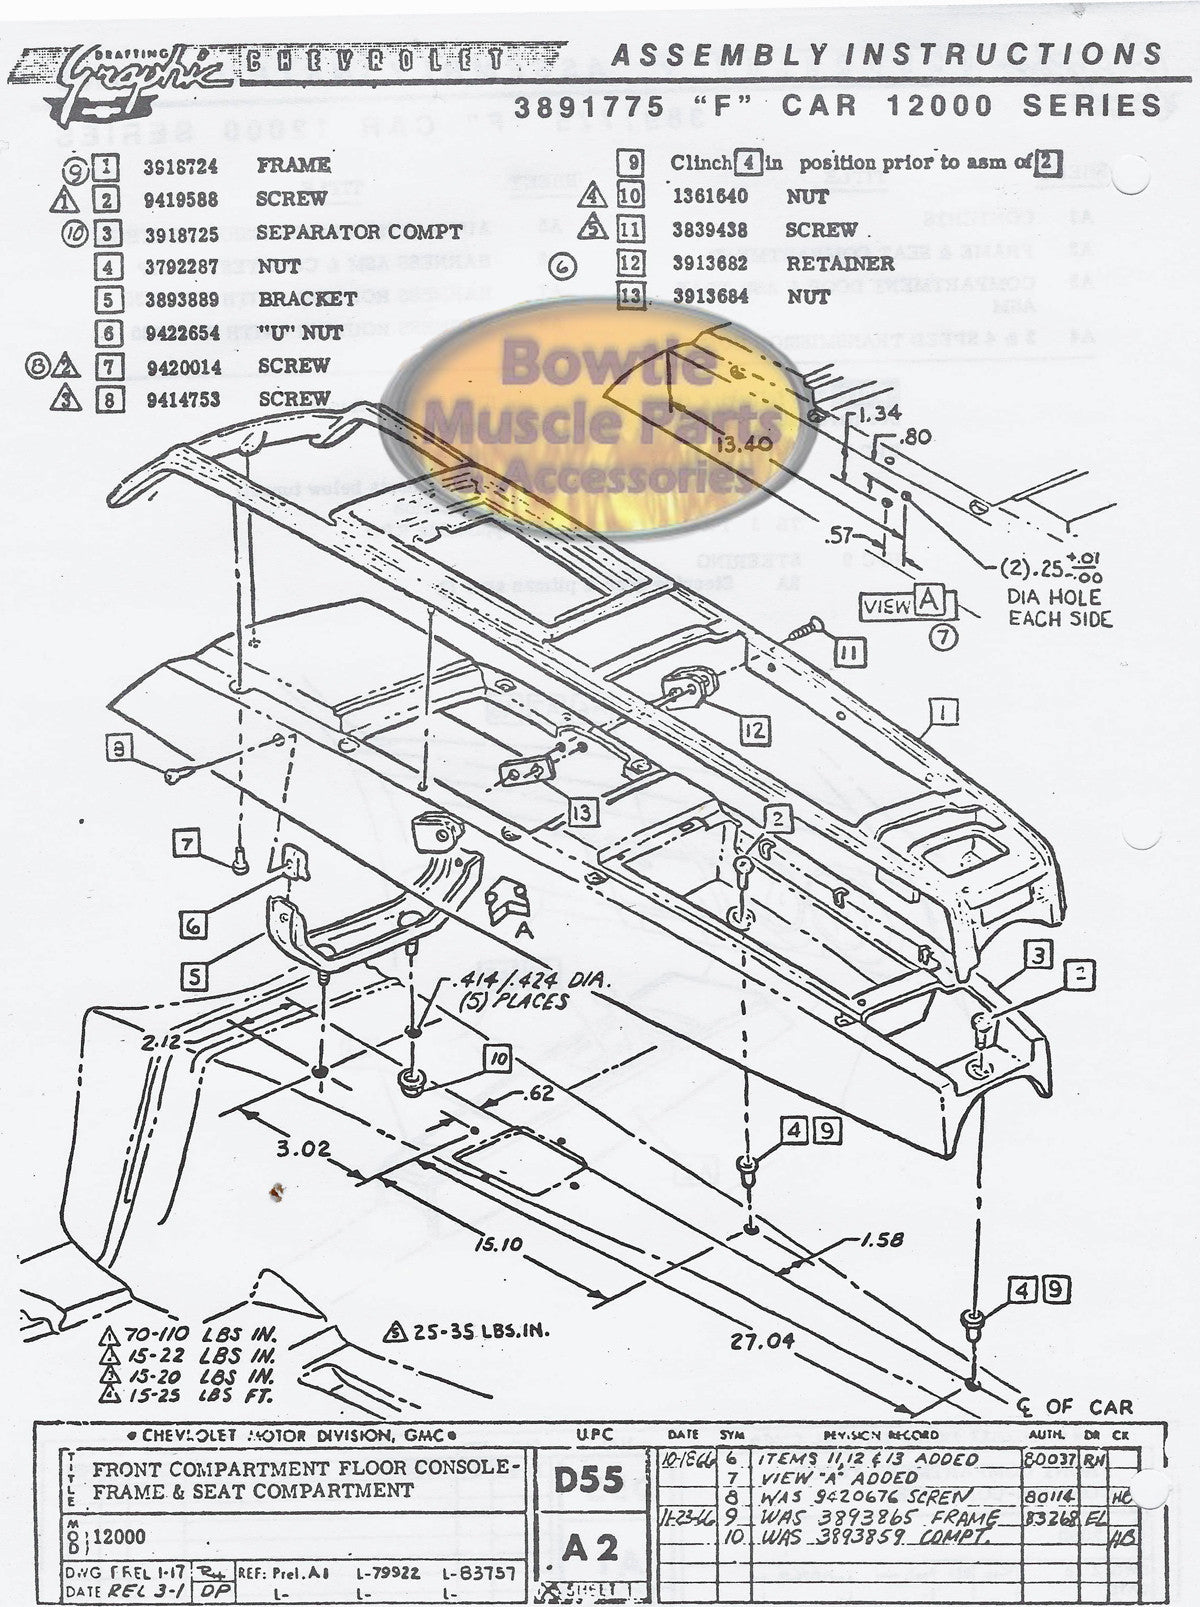 1967 67 camaro factory assembly manual z28 ss rs 418 pages 69 Yenko Camaro 1967 67 camaro factory assembly manual z28 ss rs 418 pages